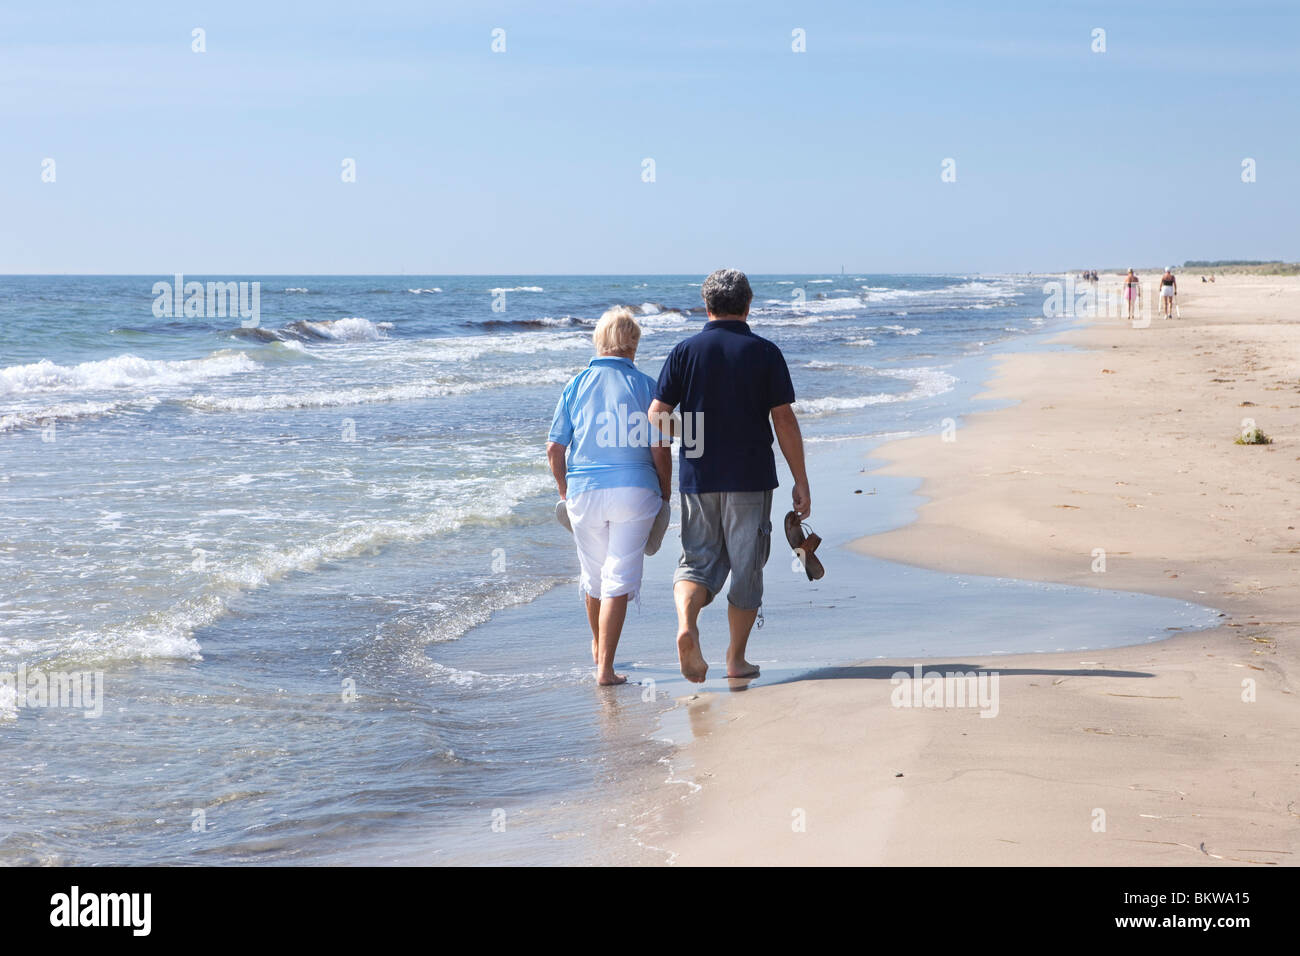 Two people walking in the water's edge - Stock Image